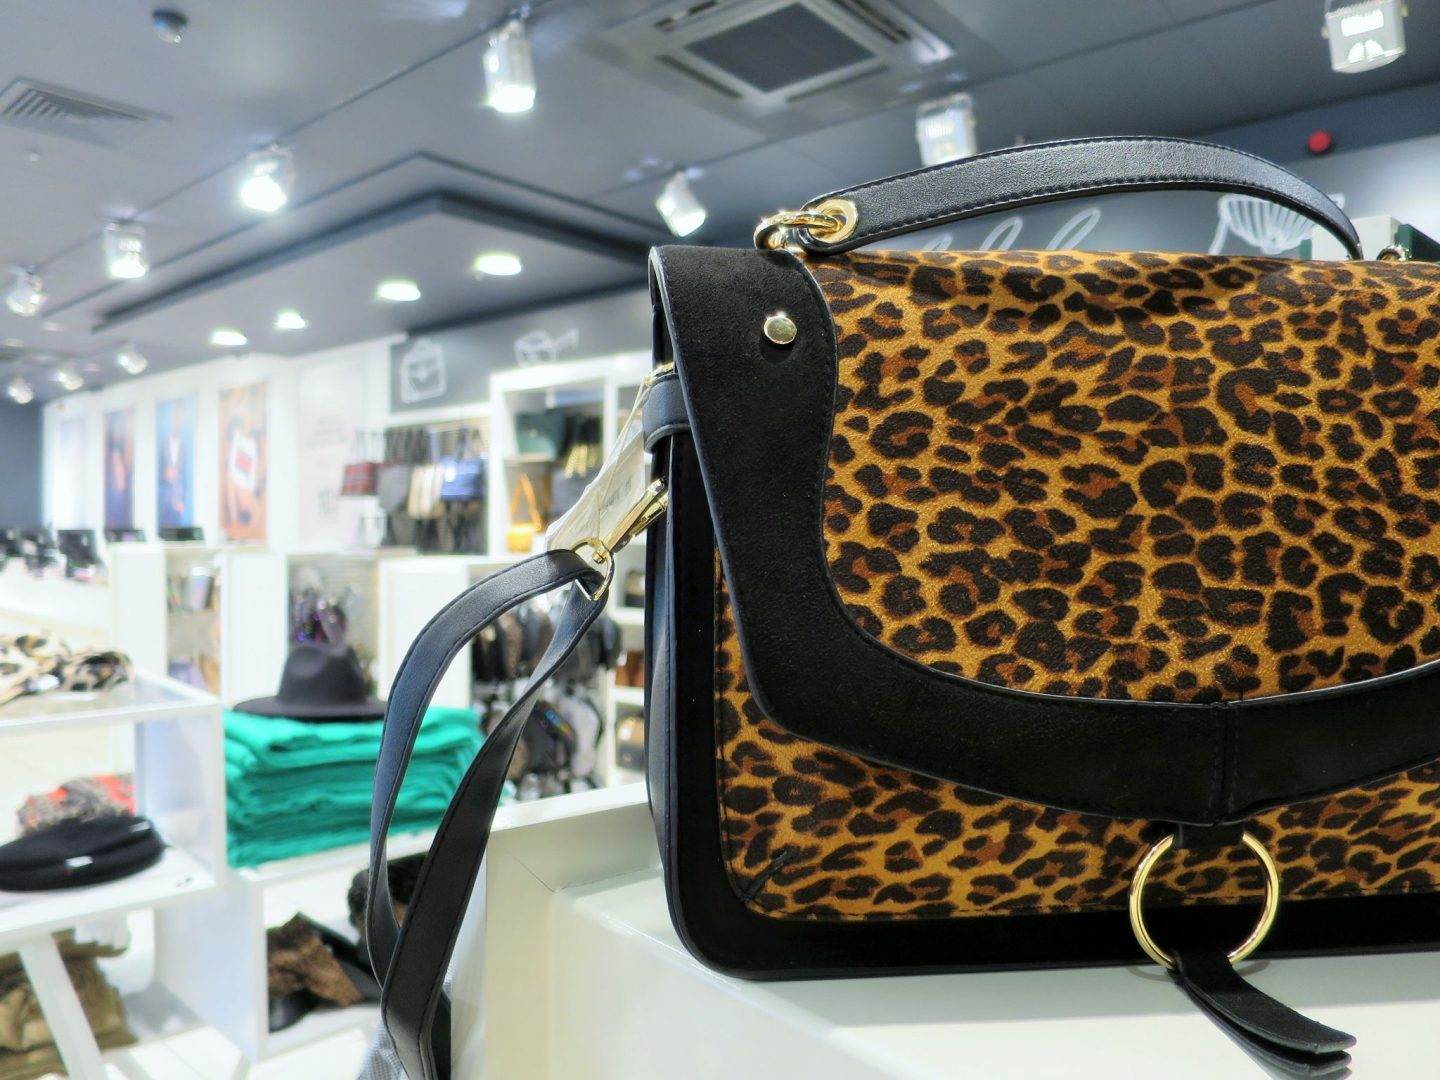 New Look leopard print bag - AW18 Bag Trends